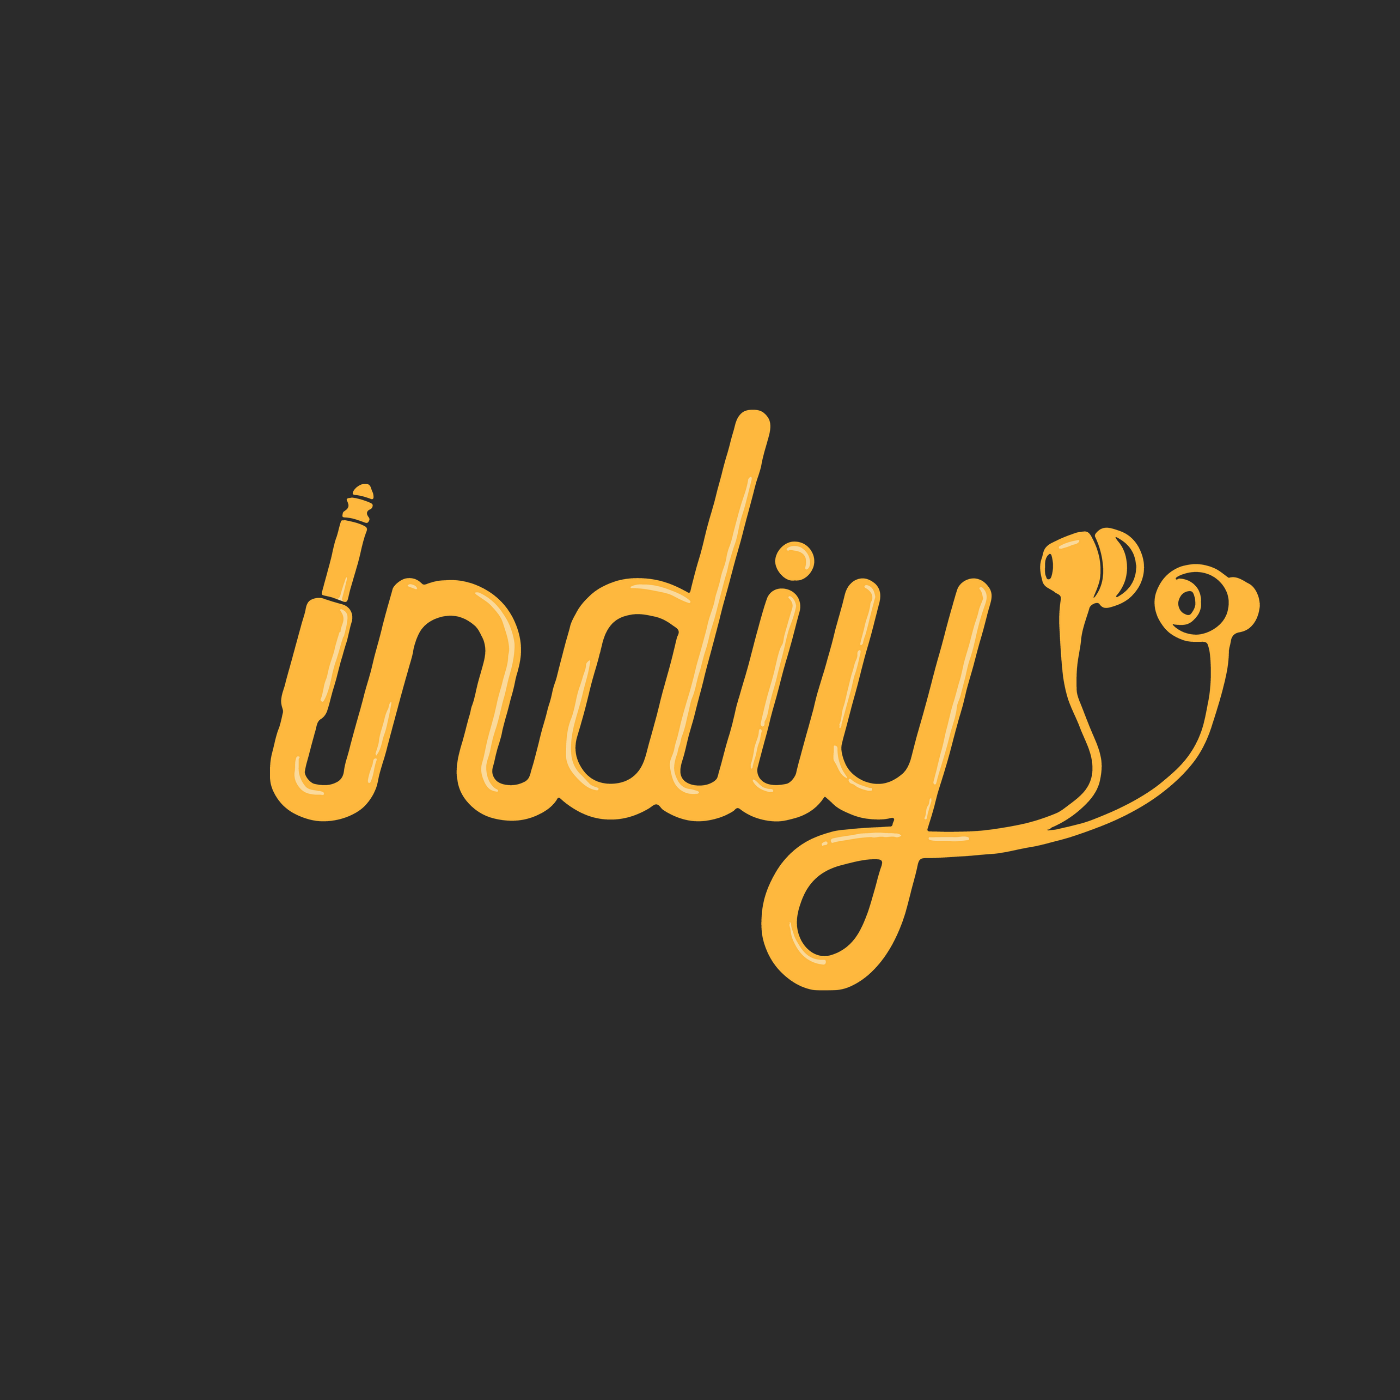 INDIY CHANGES THE MUSIC INDUSTRY FOR CREATORS